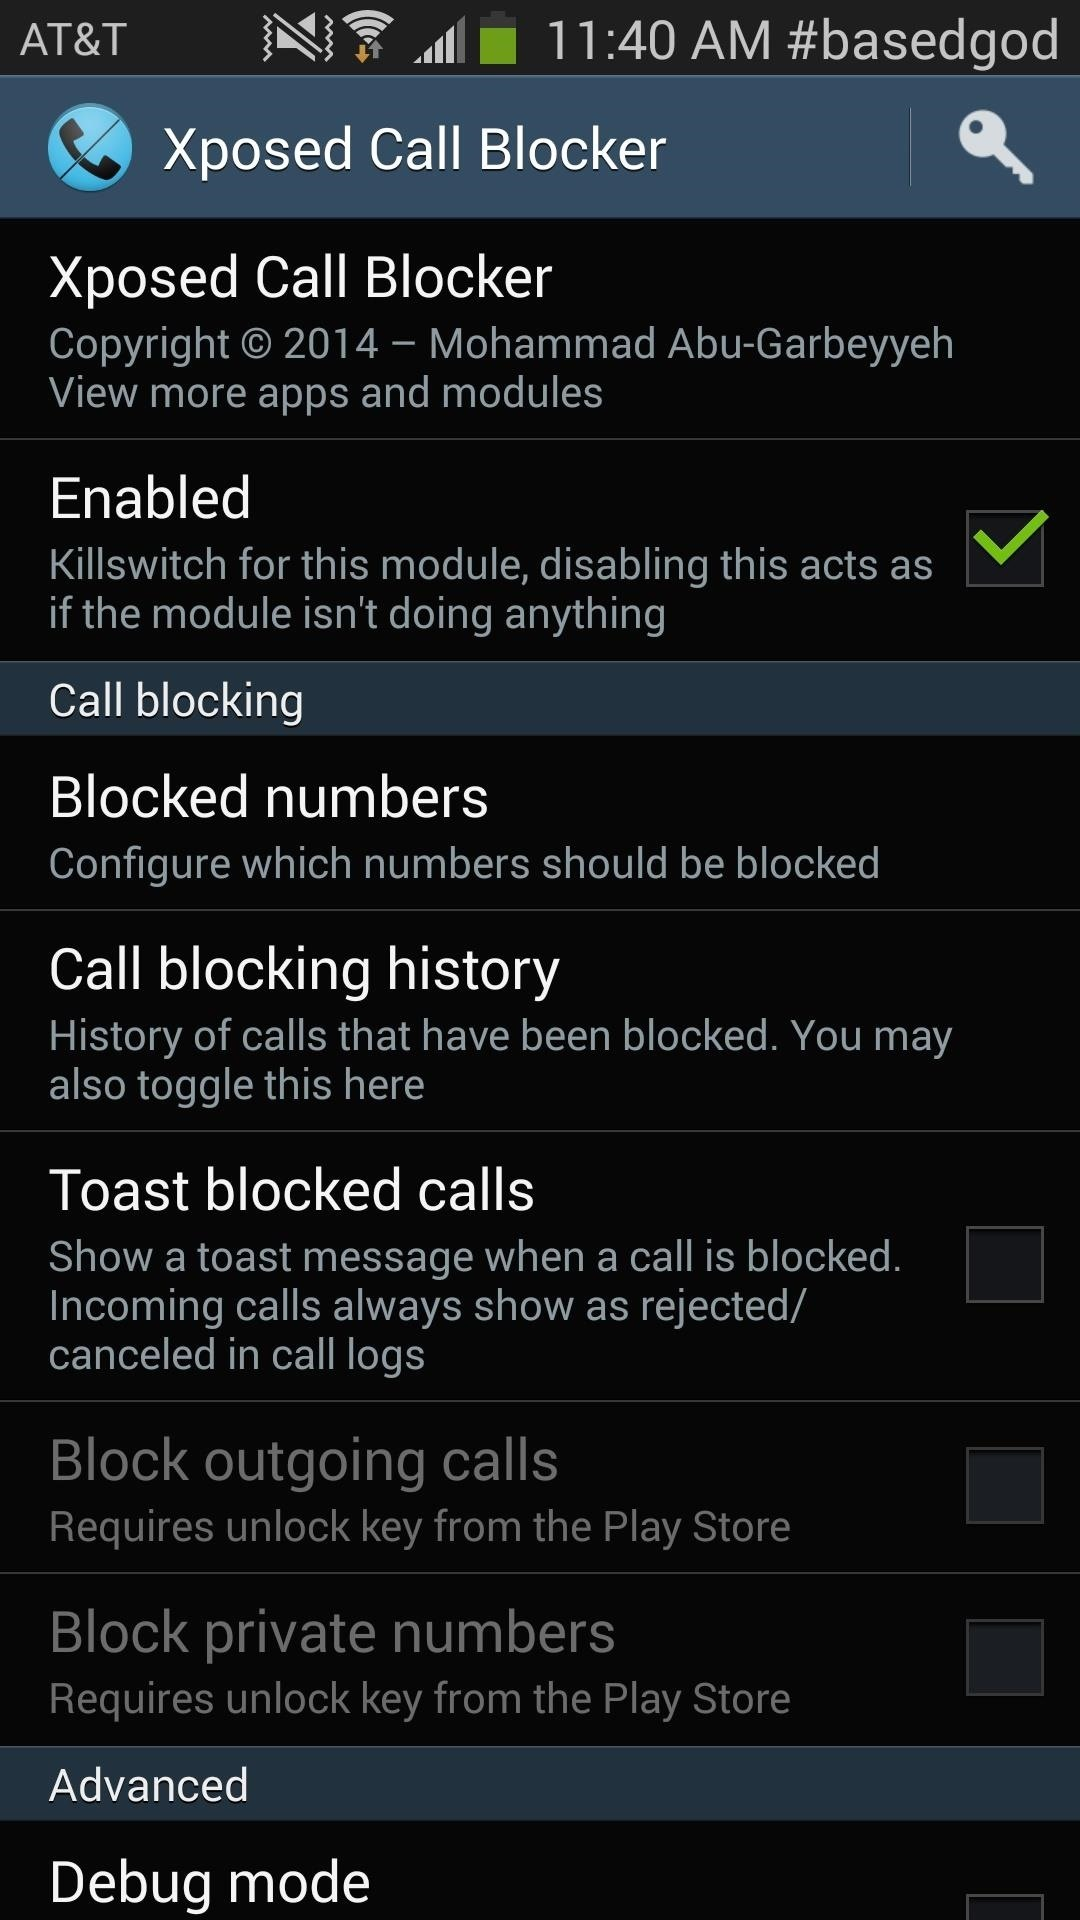 In Order To Block Calls, Head Over To Xposed Call Blocker And Select